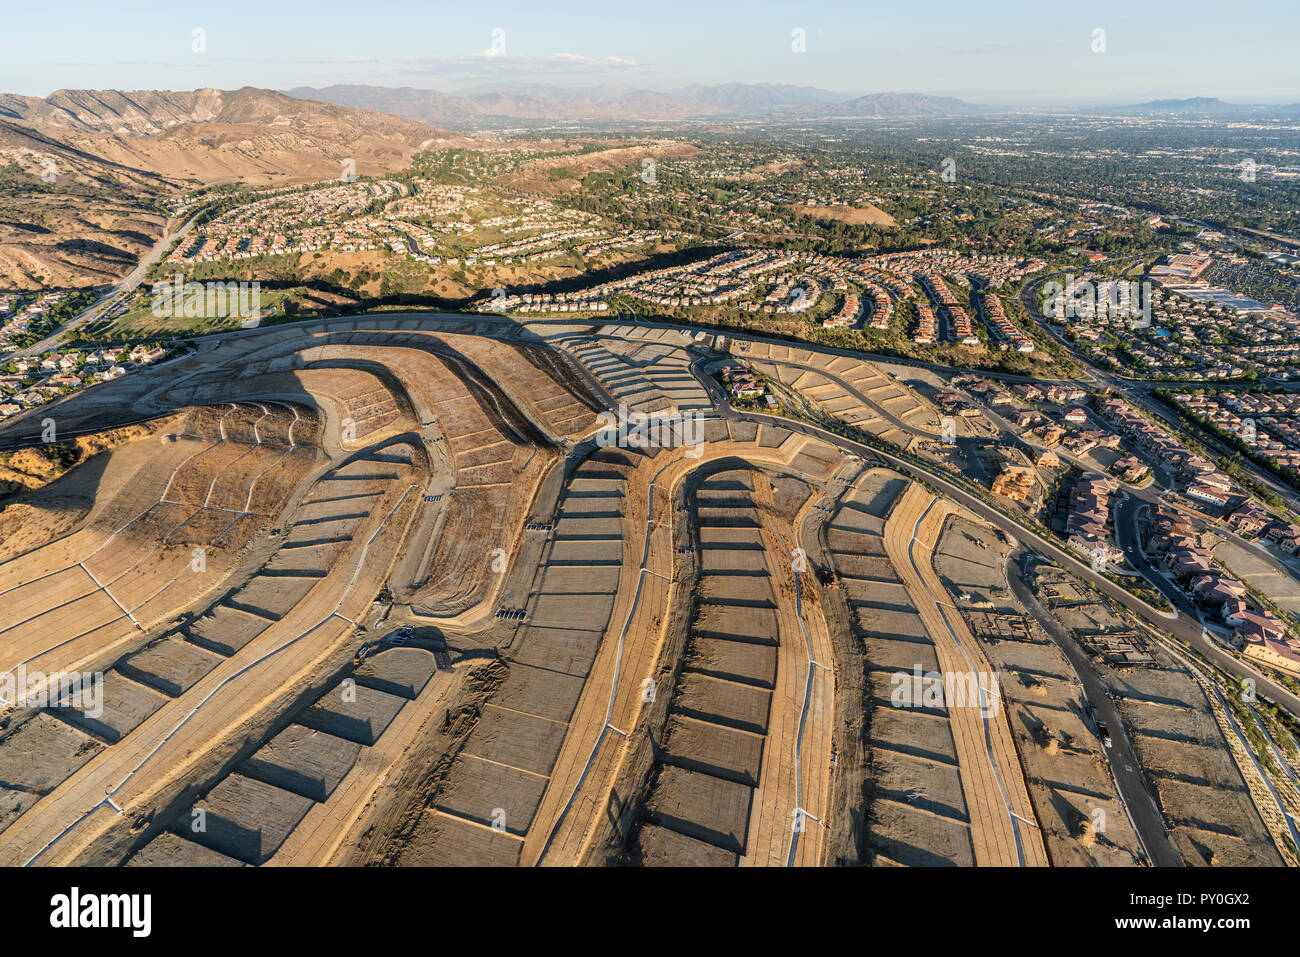 Aerial view of new neighborhood construction grading in the Porter Ranch community of Los Angeles, California. - Stock Image